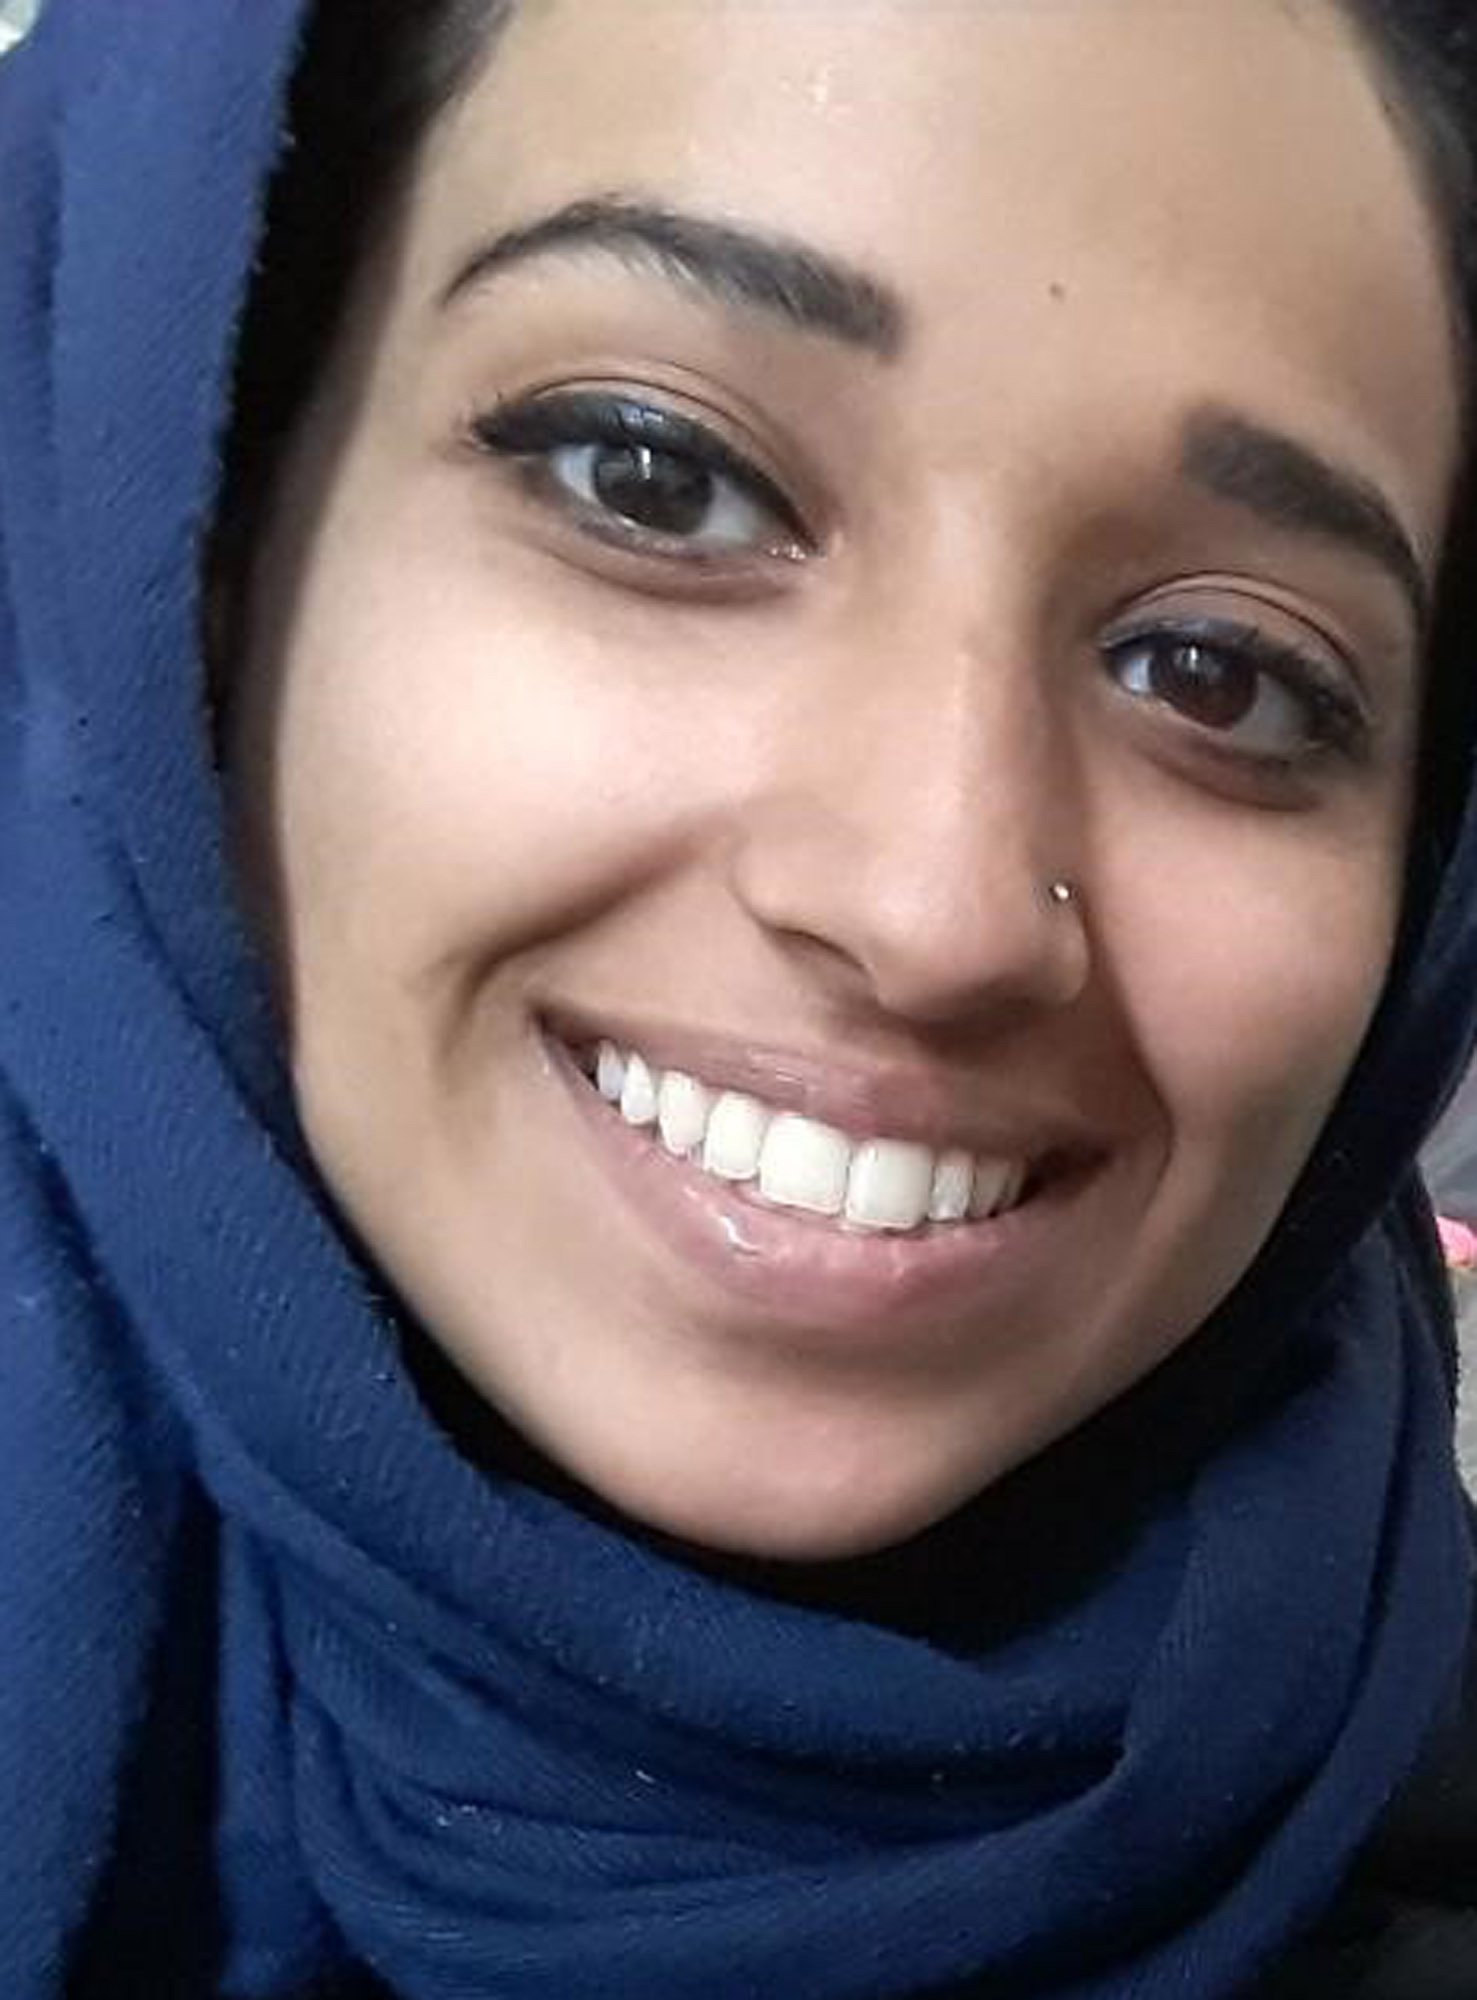 US: Alabama woman who joined Islamic State is not a citizen